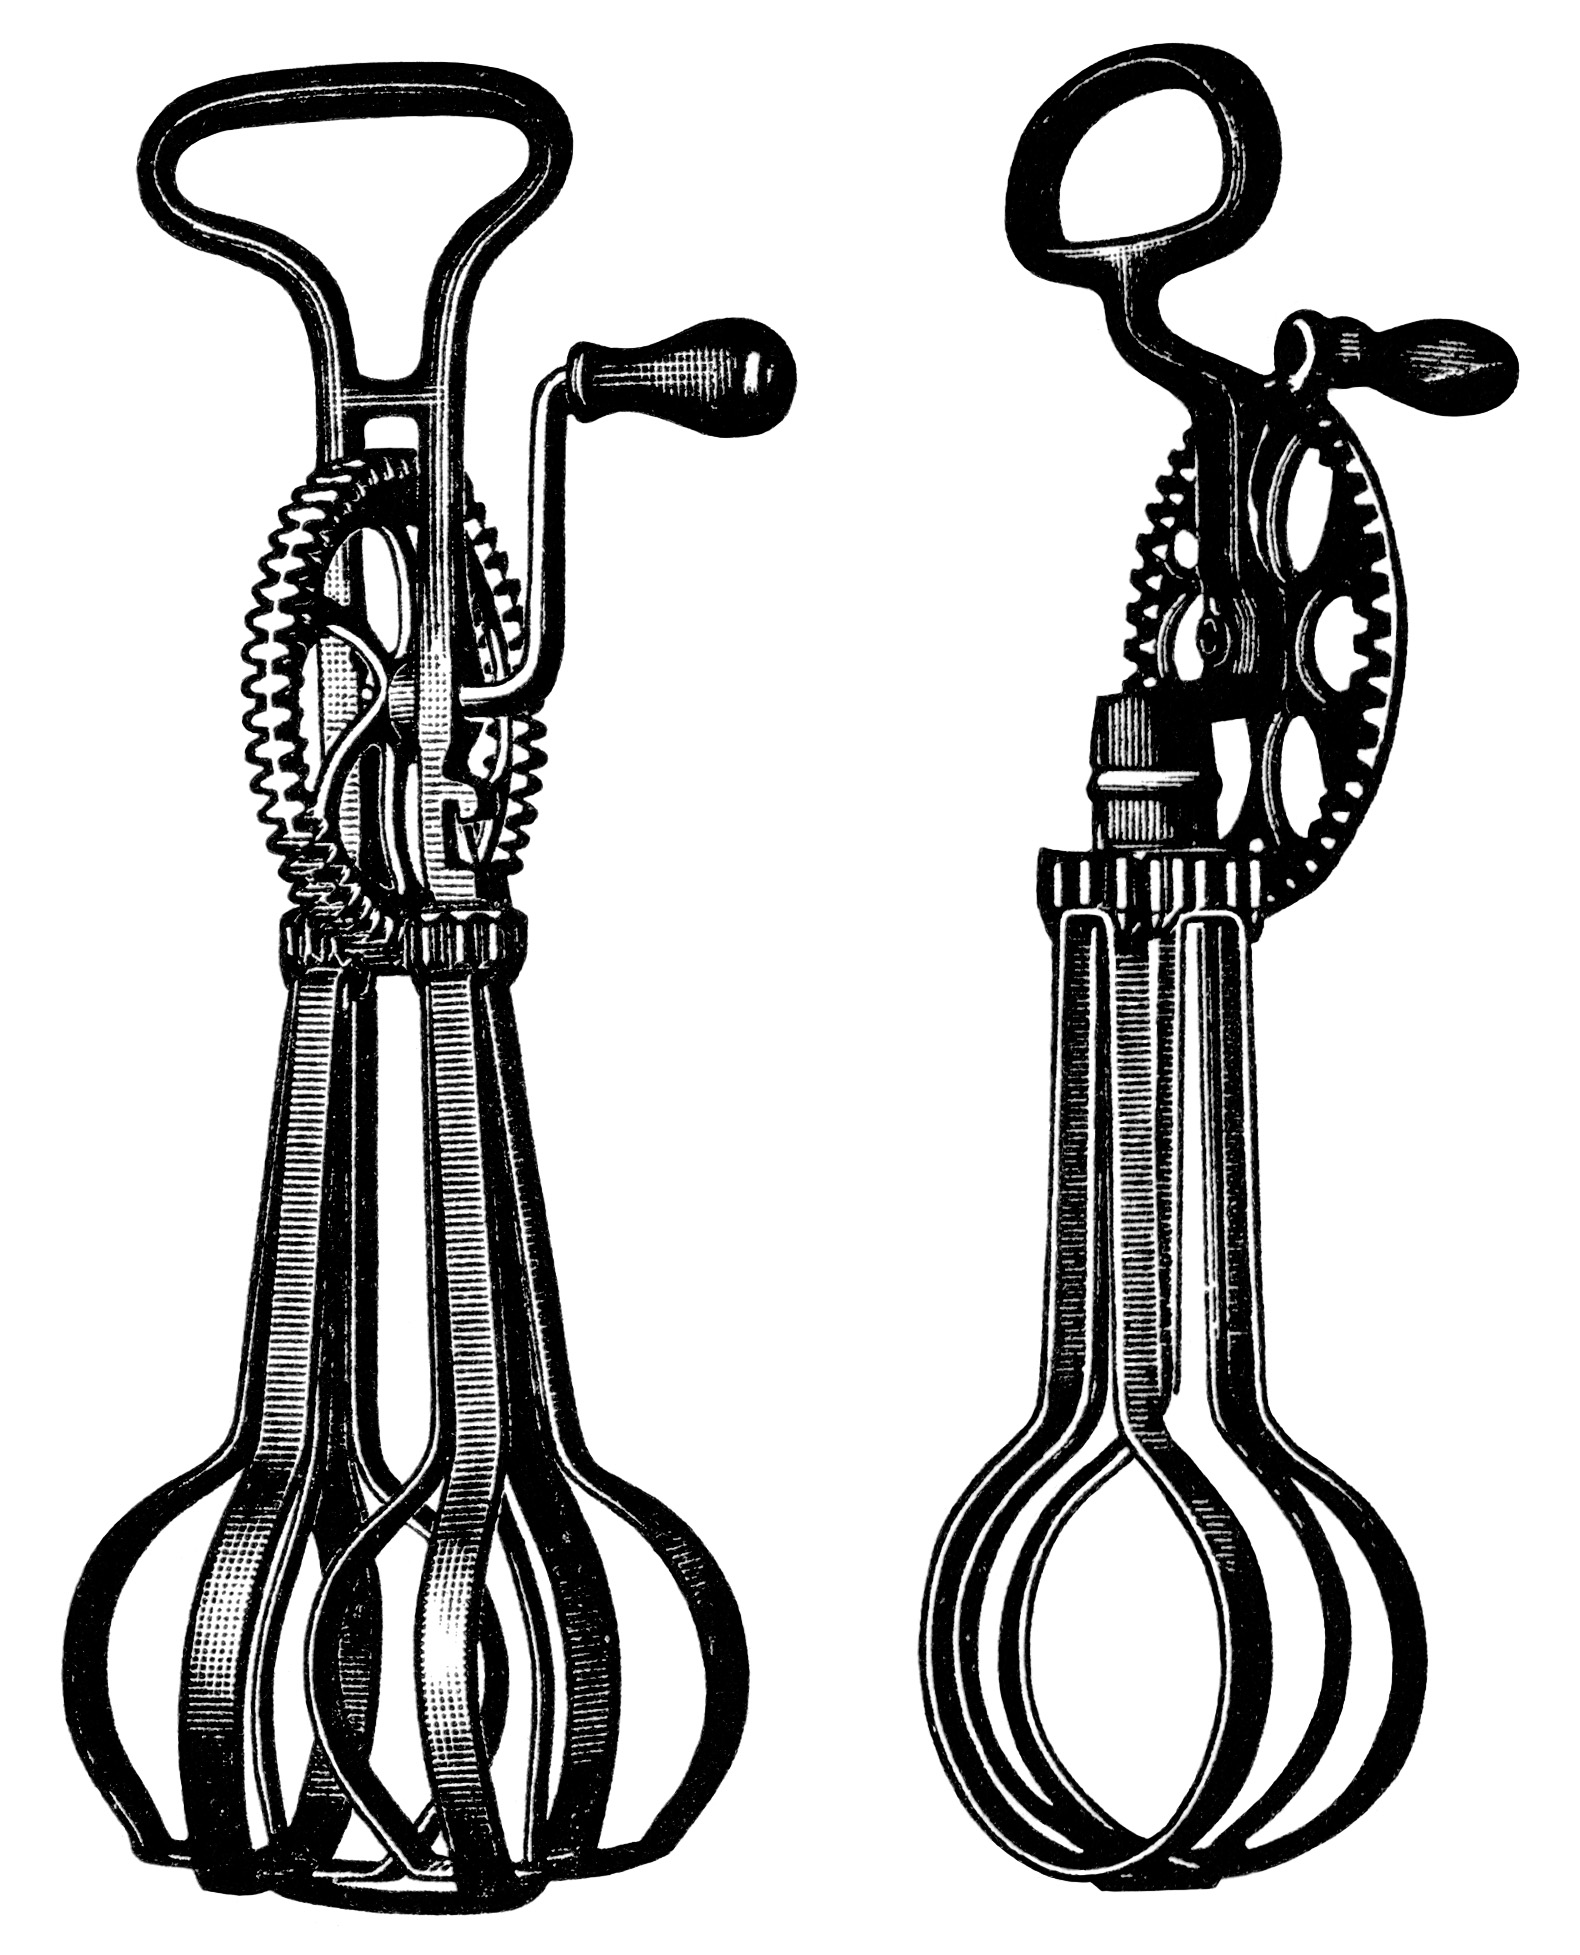 antique food mixer image, free black and white clip art, taplin egg beater illustration, old magazine ad, vintage kitchen clip art